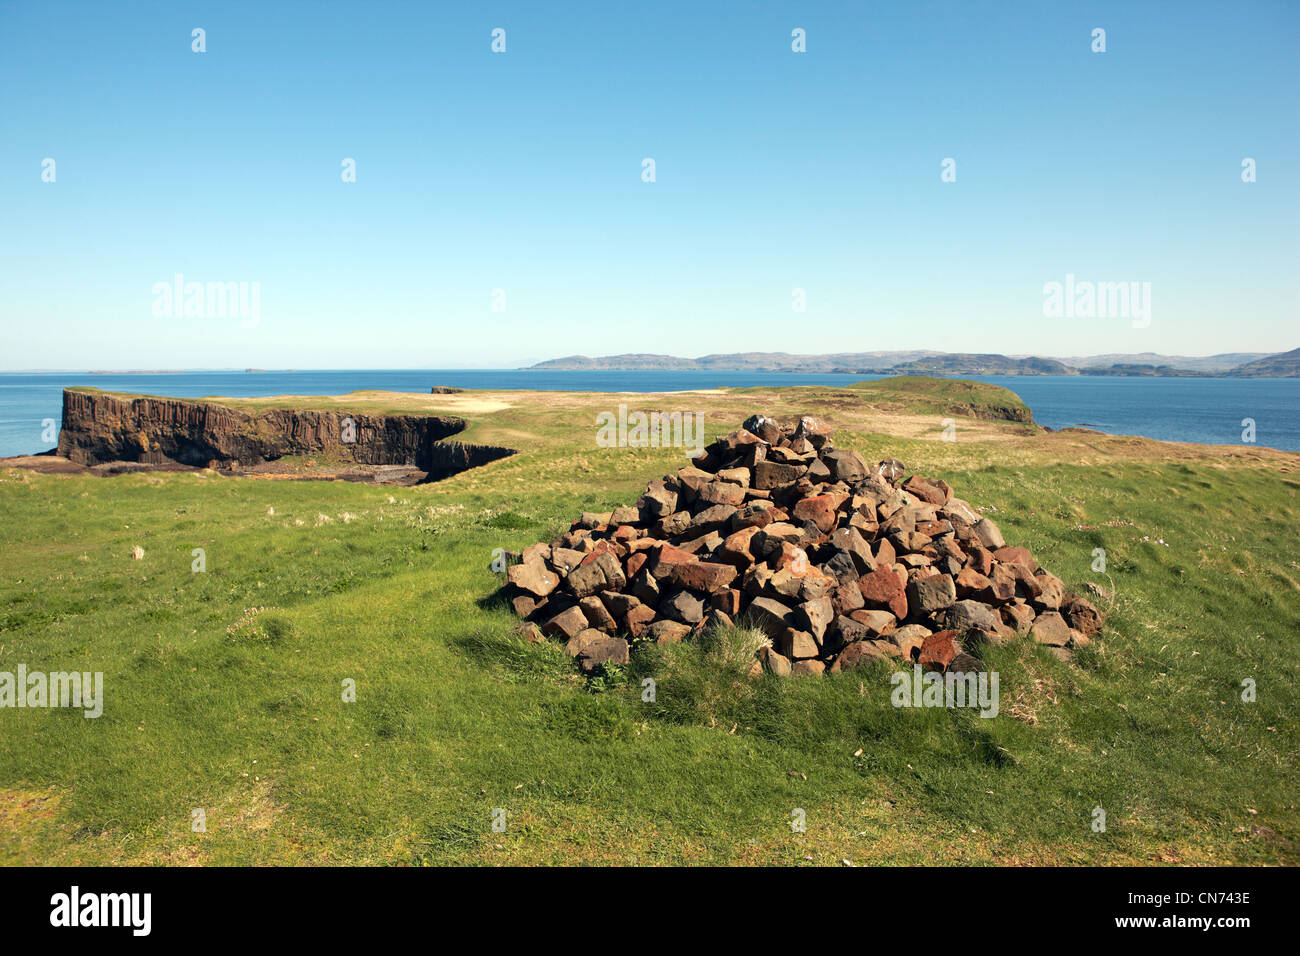 Cairn at the flat grassy top of the Isle of Staffa in the Inner Hebrides of Scotland with views to the Isle of Mull - Stock Image